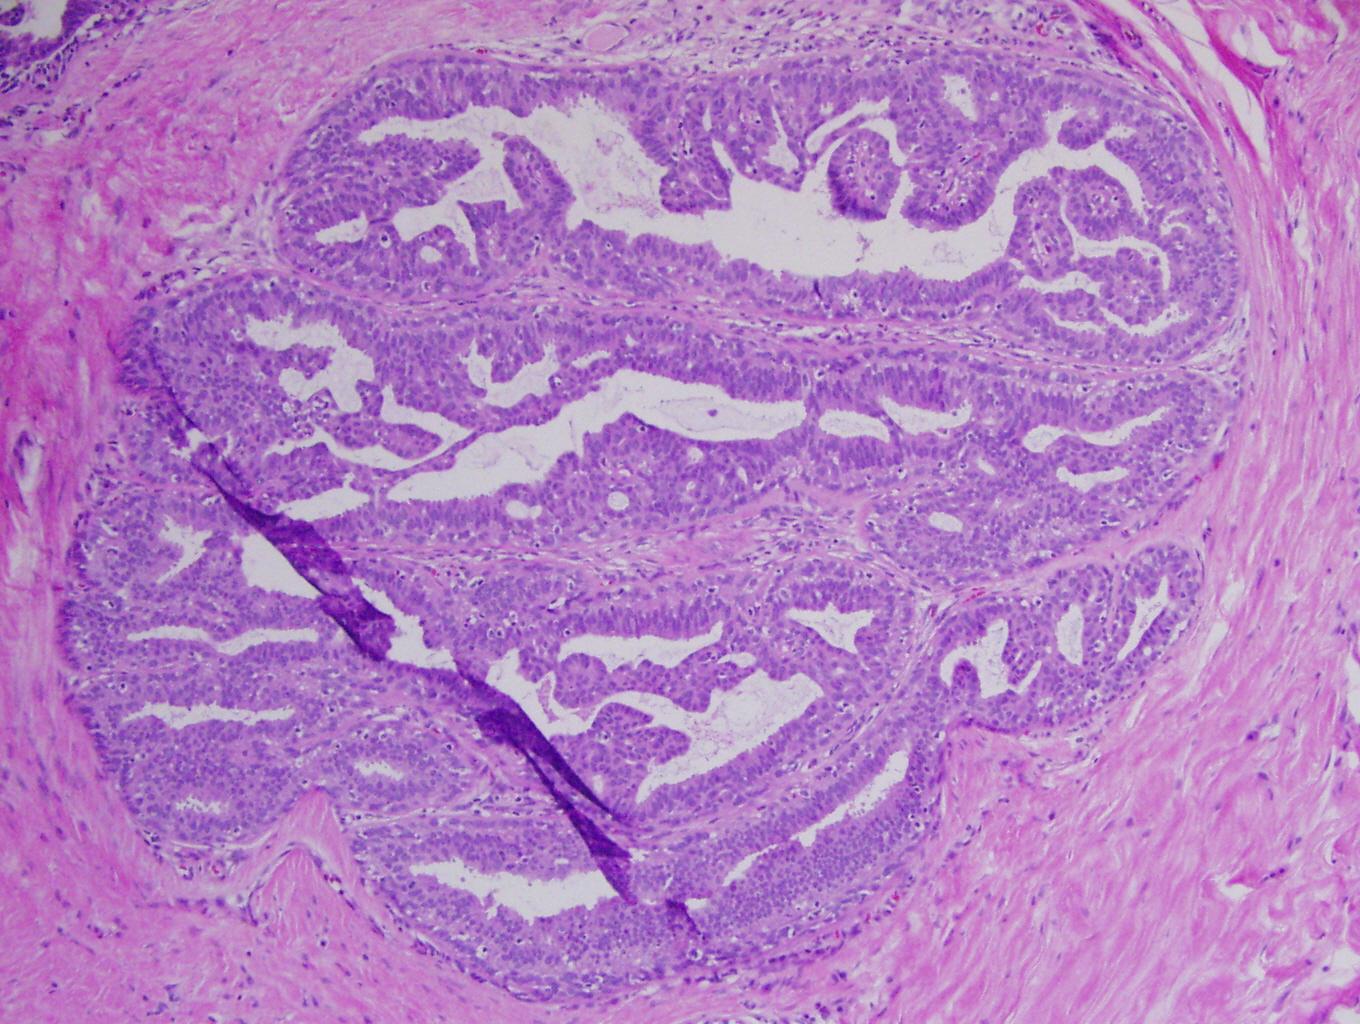 intraductal papillomatosis histology helminth infection all